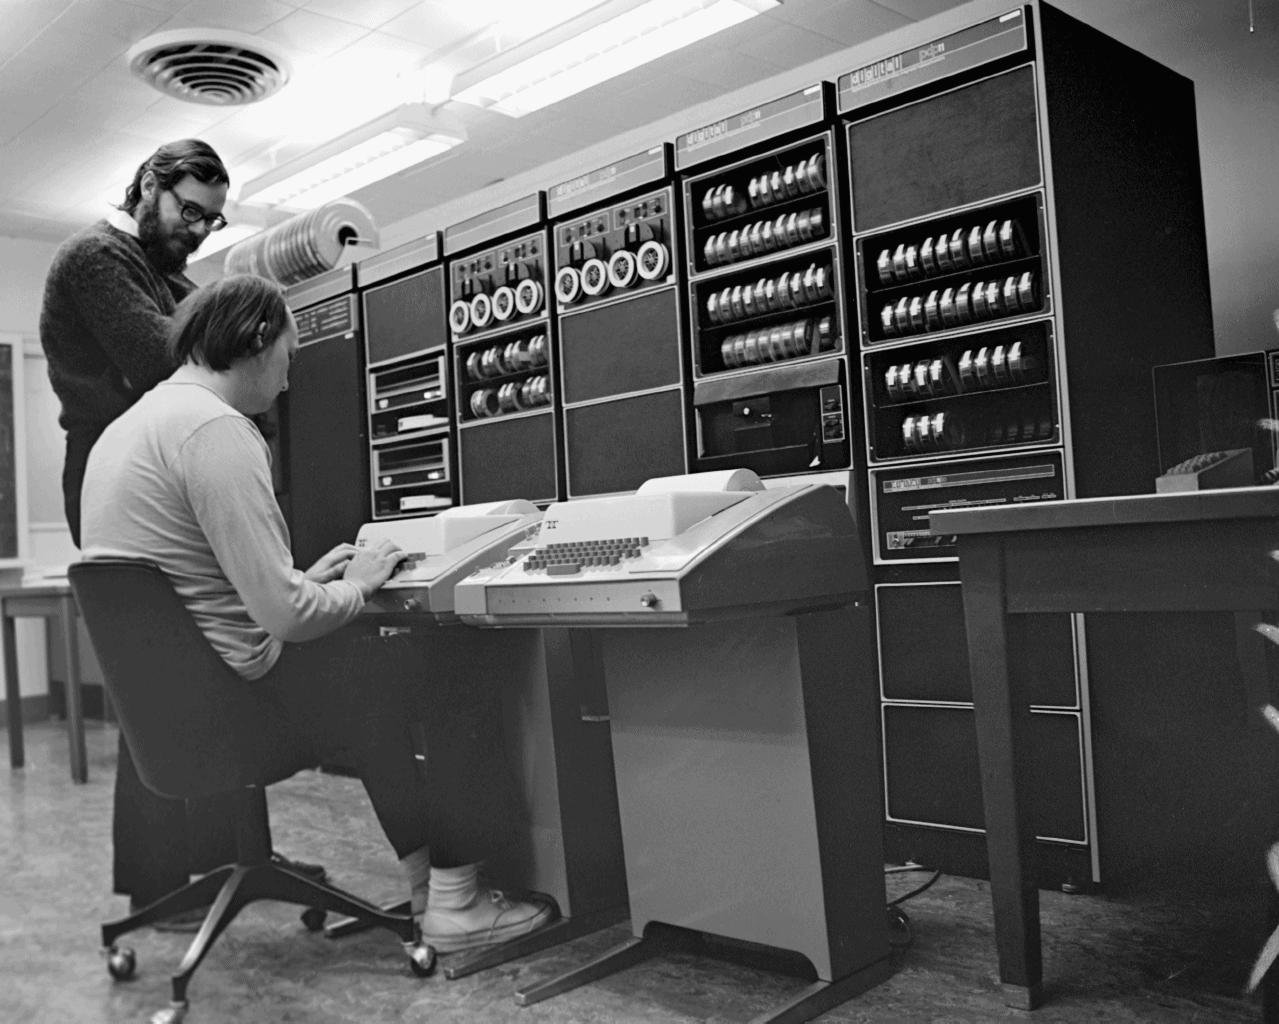 Ken Thompson and Dennis Ritchie at the PDP-11 in 1972